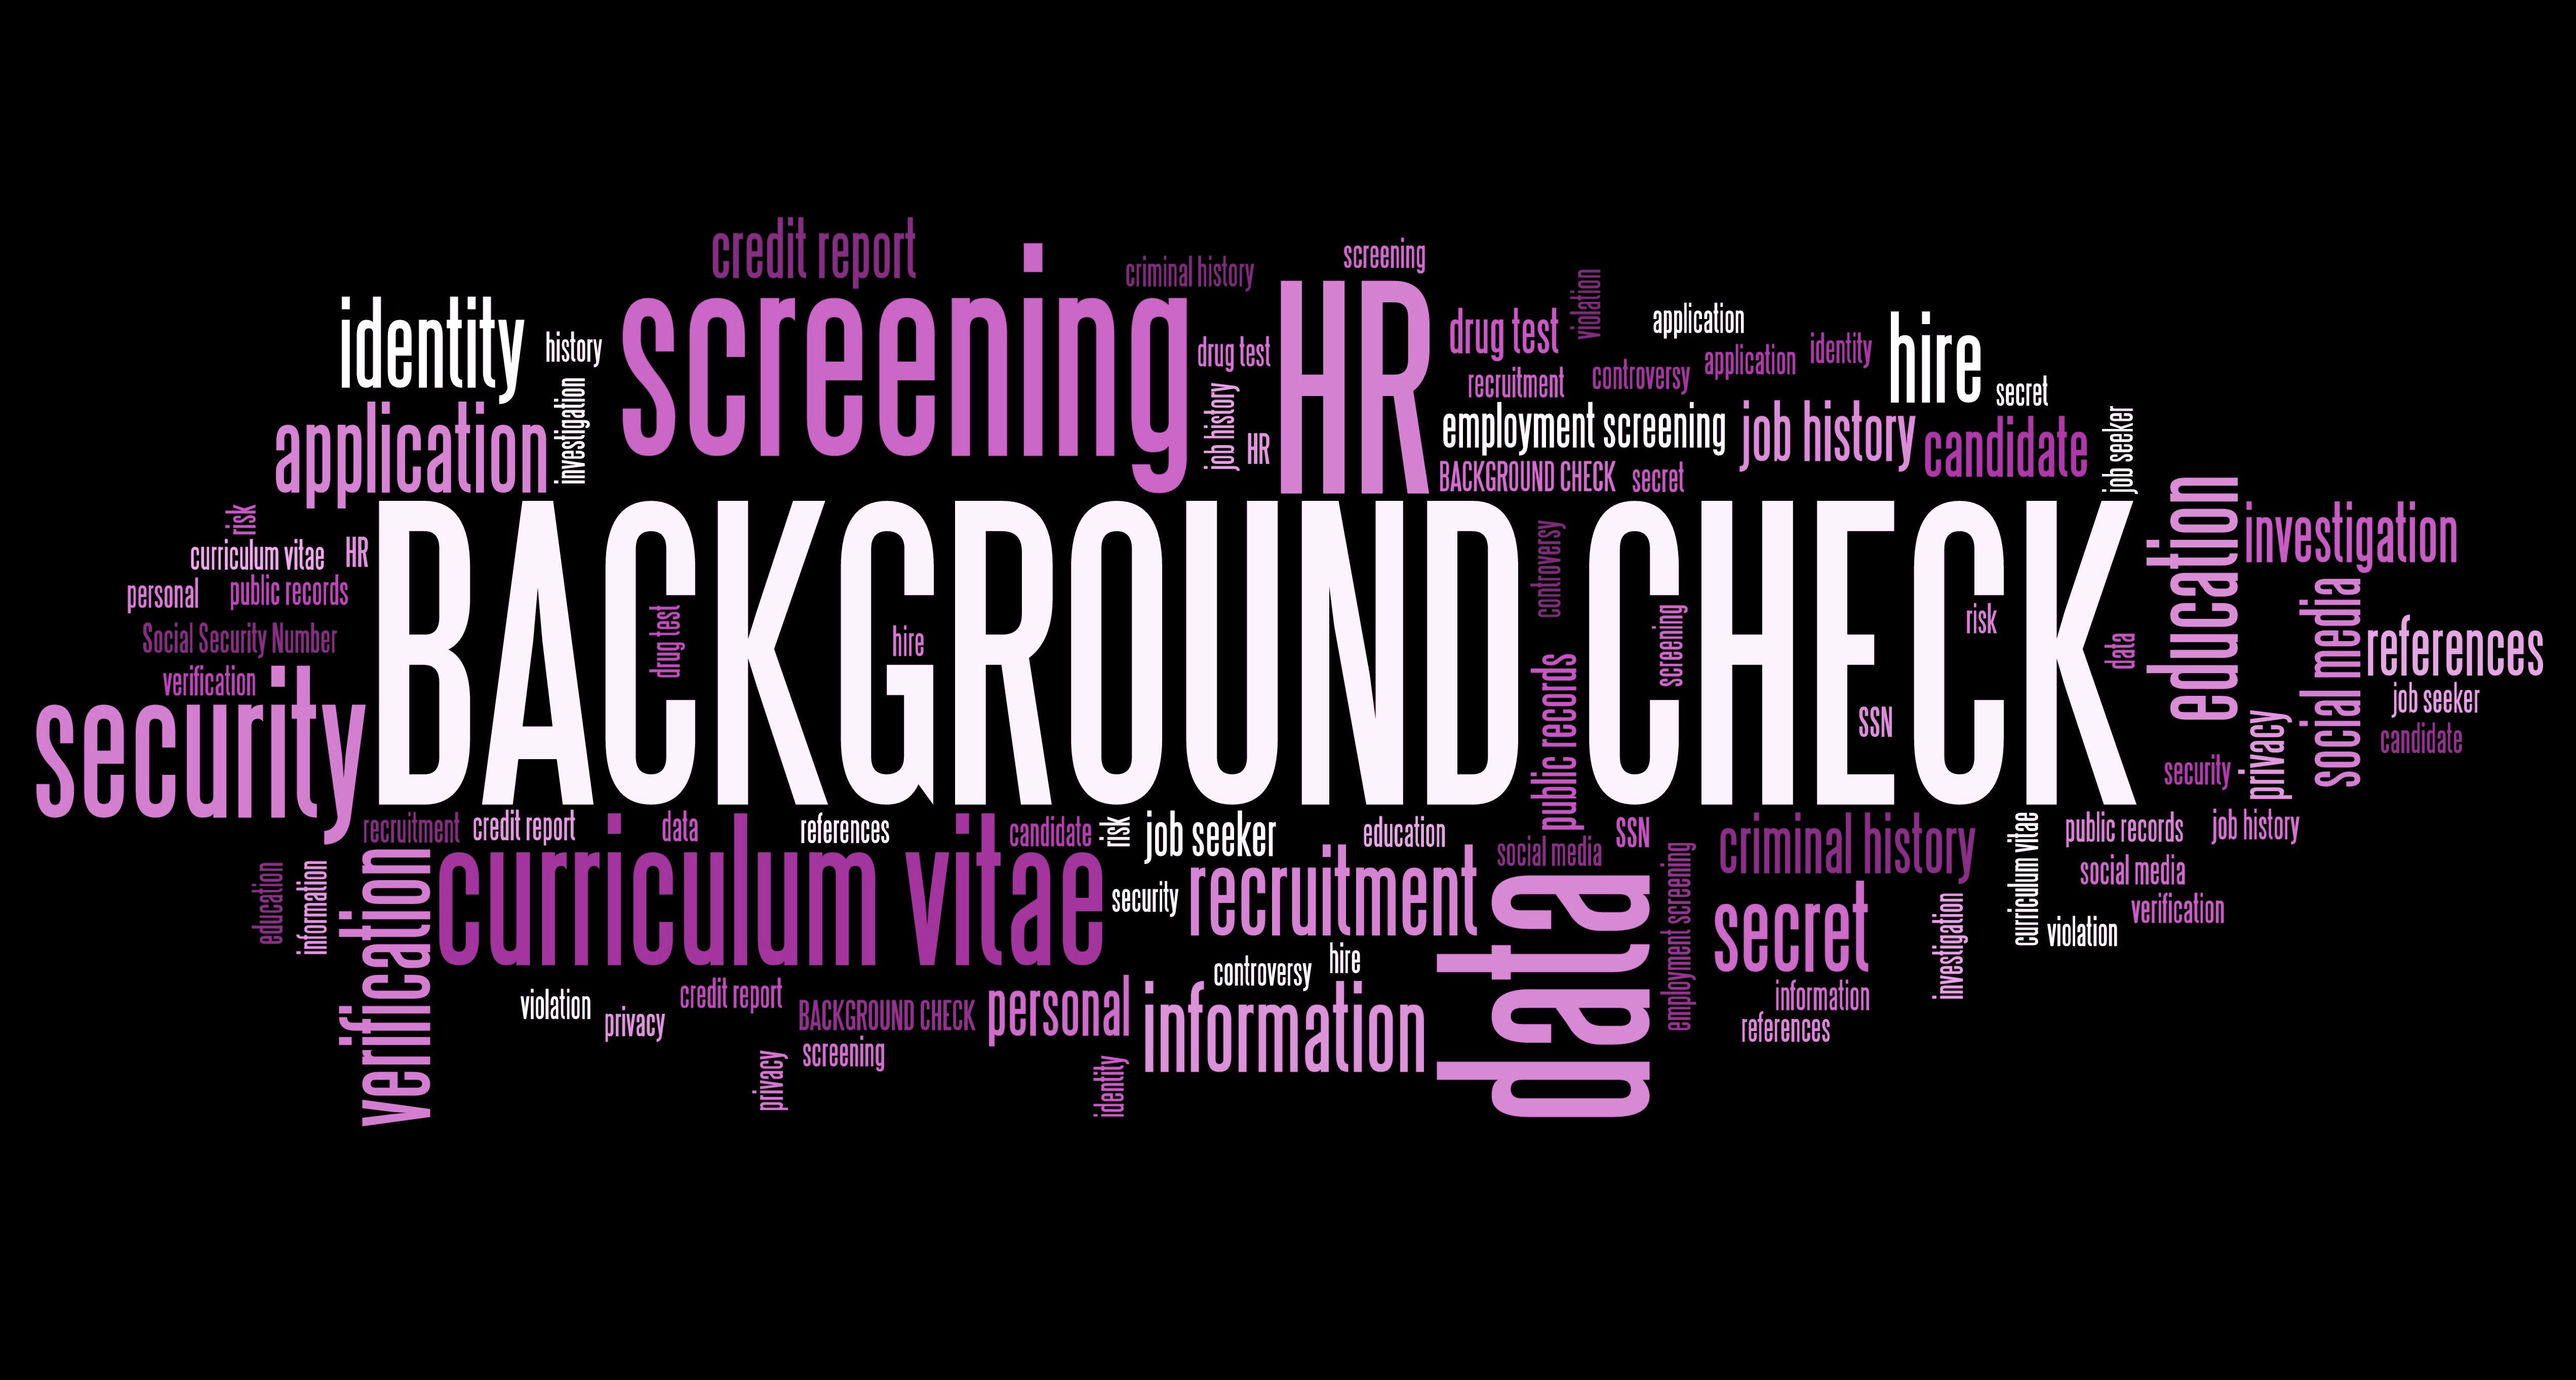 check references security clearances and personal documentation as required